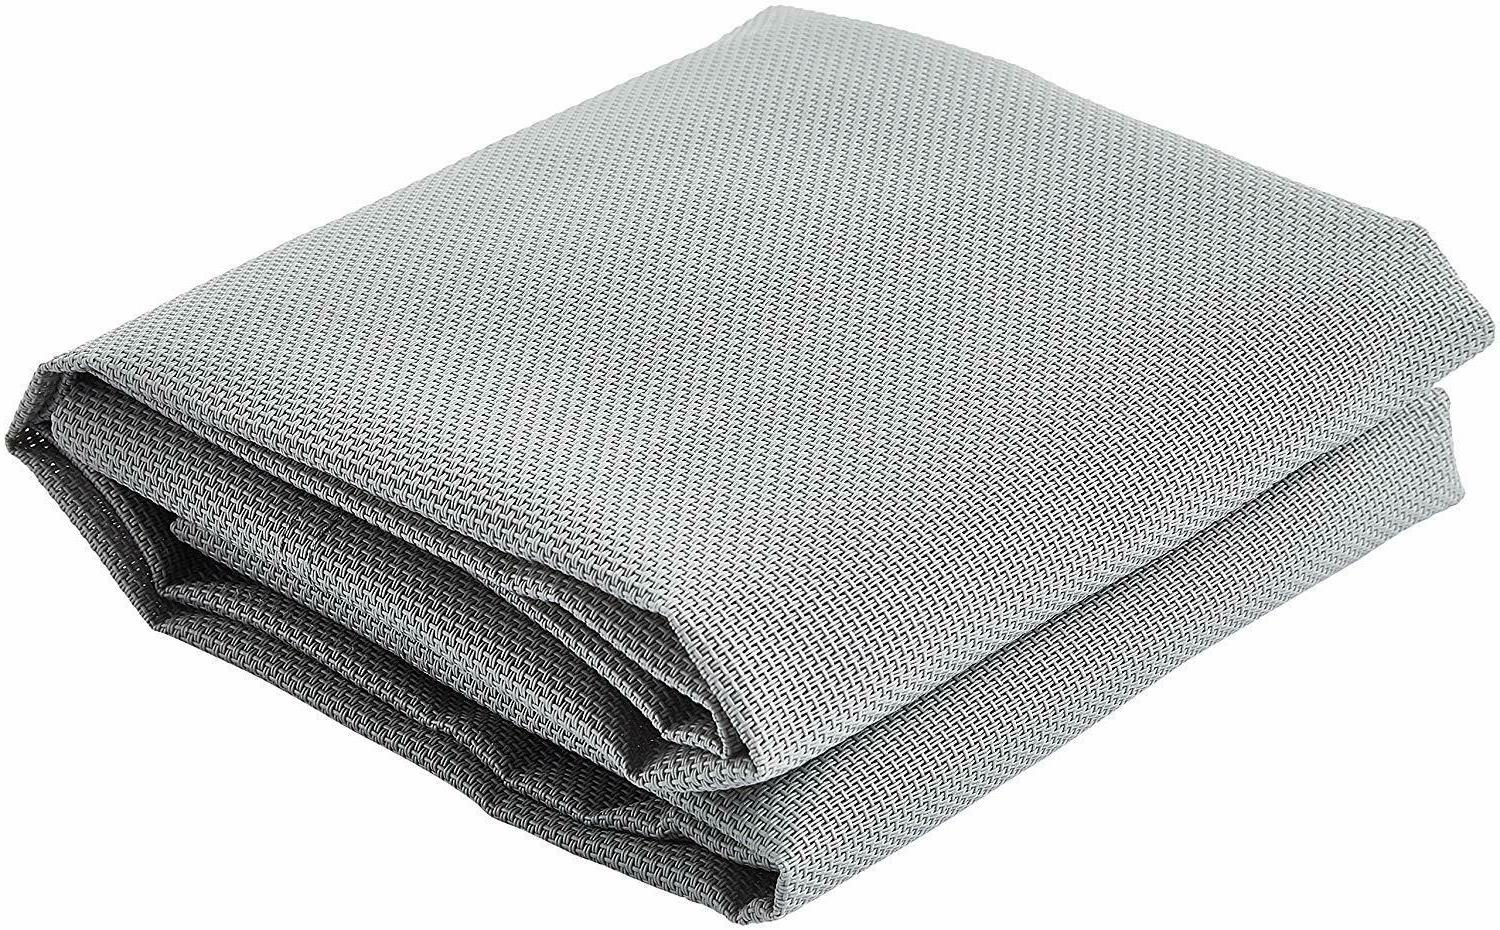 AmazonBasics Elevated Cooling Bed Replacement Updated Sizing, Grey